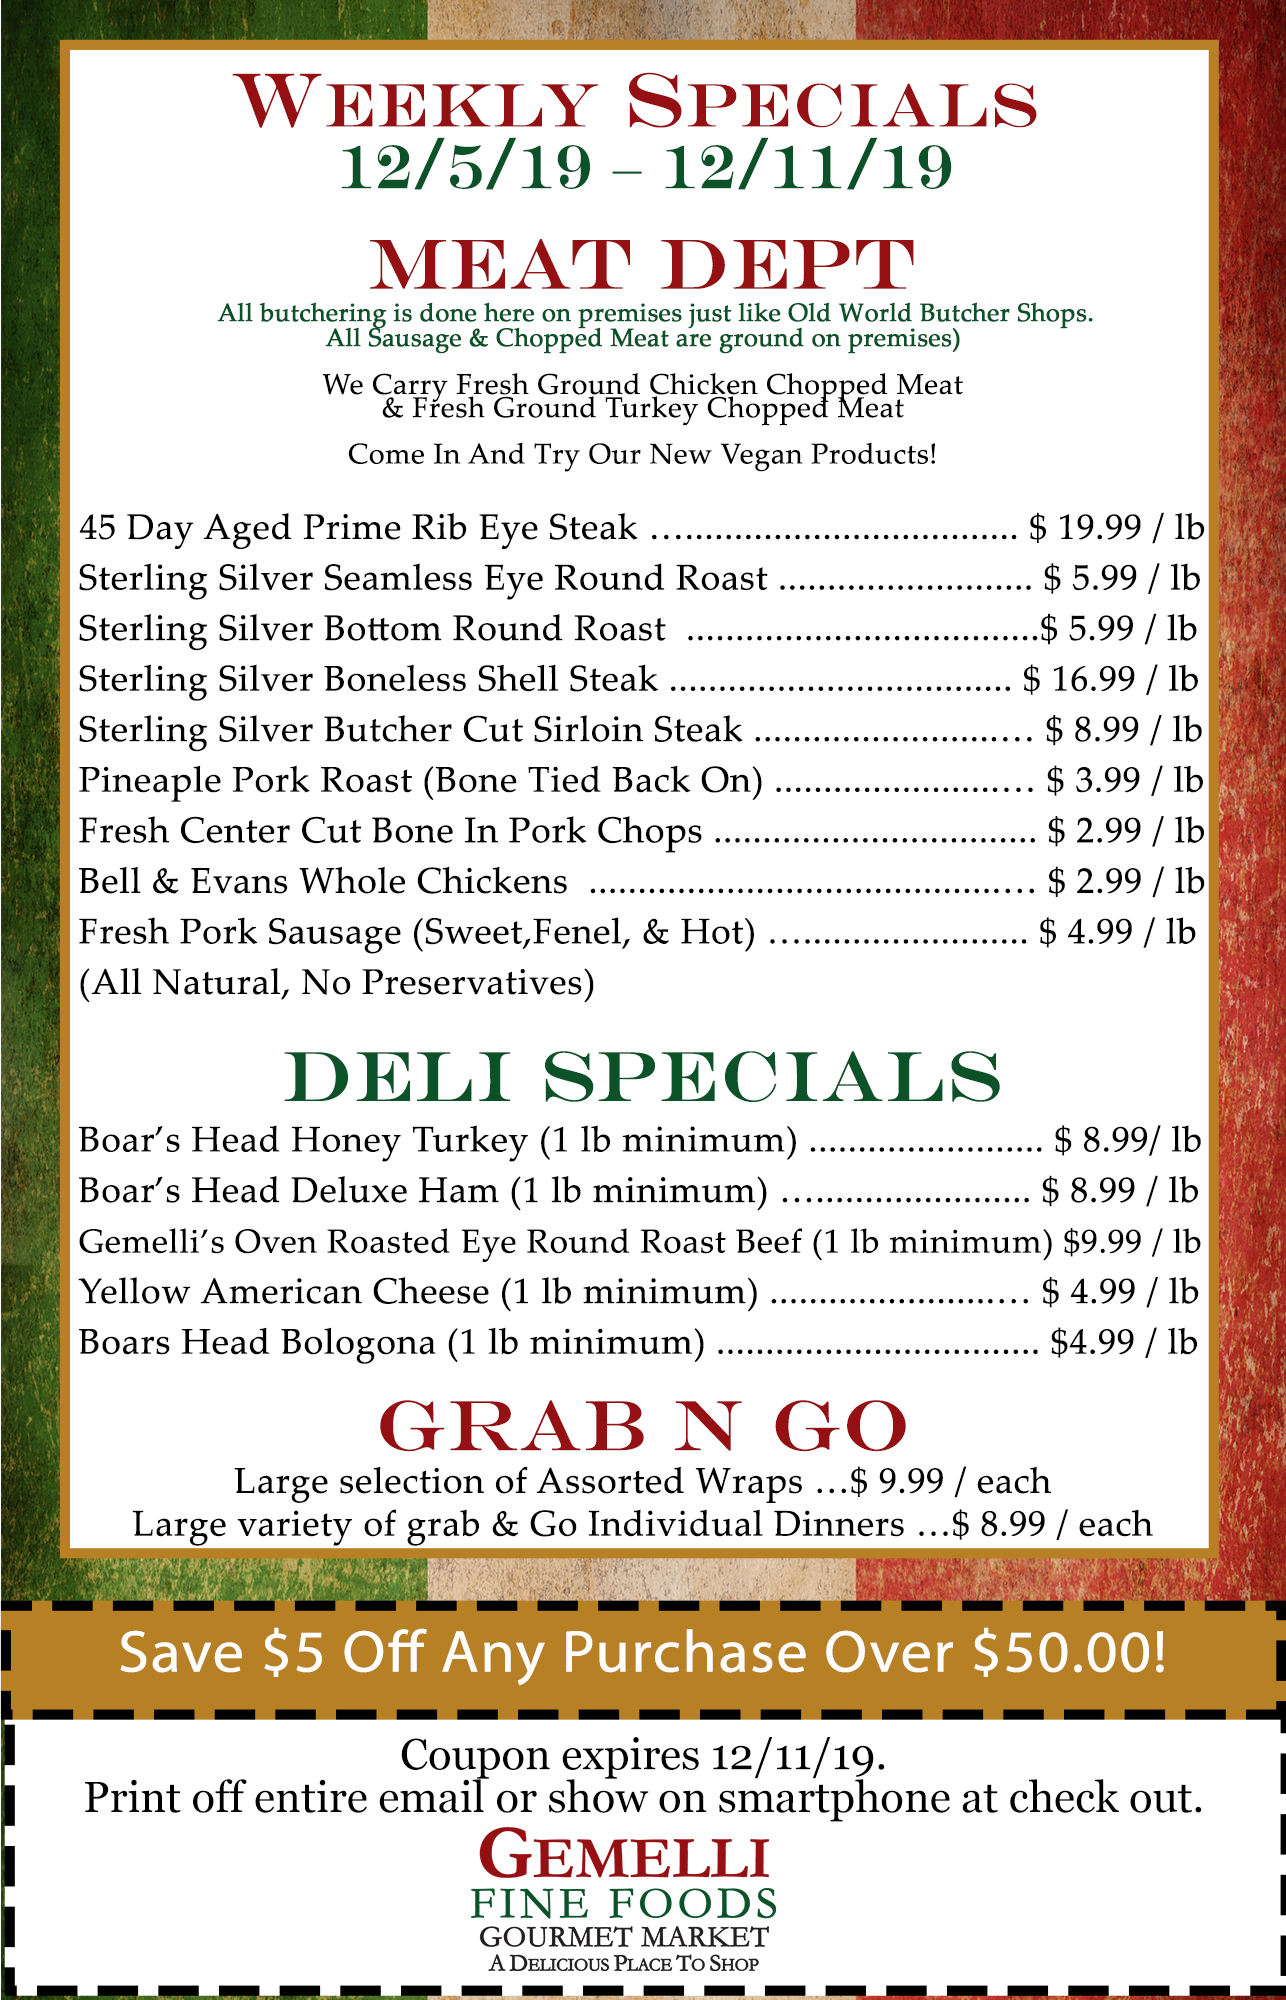 """WEEKLY SALES 12/5/19 – 12/11/19  Meat Department:  (All butchering is done here on premises just like Old World Butcher Shops. All Sausage & Chopped Meat are ground on premises). We carry: Fresh Ground Chicken Chopped Meat & Fresh Ground Turkey Chopped Meat. Come in and try our new Vegan Products.Come in and try all our Homemade Sauces. No Preservatives, All Natural: Puttanesca Sauce, Fra Diavolo Sauce, Filetto Di Pomodoro Sauce, Vodka Sauce, Marinara Sauce, Porcini Sauce, Amatriciana Sauce and Alfredo Sauce. 45 Day Aged Prime Rib Eye Steak … $ 19.99 / lb . Sterling Silver Seamless Eye Round Roast … $ 5.99 / lb. Sterling Silver Bottom Round Roast…$ 5.99 / lb. Sterling Silver Boneless Shell Steak … $ 16.99 / lb. Sterling Silver Butcher Cut Sirloin Steak … $ 8.99 / lb. Pineapple Pork Roast (Bone tied back on) … $ 3.99 / lb. Fresh Center Cut Bone In Pork Chops … $ 2.99 / lb.Bell & Evans Whole Chickens … $ 2.99 / lb. Fresh Pork Sausage (Sweet, Fennel & Hot) … $ 4.99 / lb. (all natural, No Preservatives) Deli Specials: Boar's Head Honey Turkey … $ 8.99 / lb (1 lb minimum), Boar's Head Deluxe Ham … $ 8.99 / lb (1 lb minimum), Gemelli""""s Oven Roasted Eye Round Roast Beef (1 lb minimum) … $ 9.99 /lb, Yellow American Cheese … $ 4.99 / lb (1 lb minimum), Boar's Head Bologna … $ 4.99 / lb (1 lb minimum). Grab & Go: Large selection of Assorted Wraps …$ 9.99 / each. Large variety of grab & Go Individual Dinners …$ 8.99 / each. Coupon:$5.00 off any purchase of $50.00 or more (expires December 11, 2019)."""